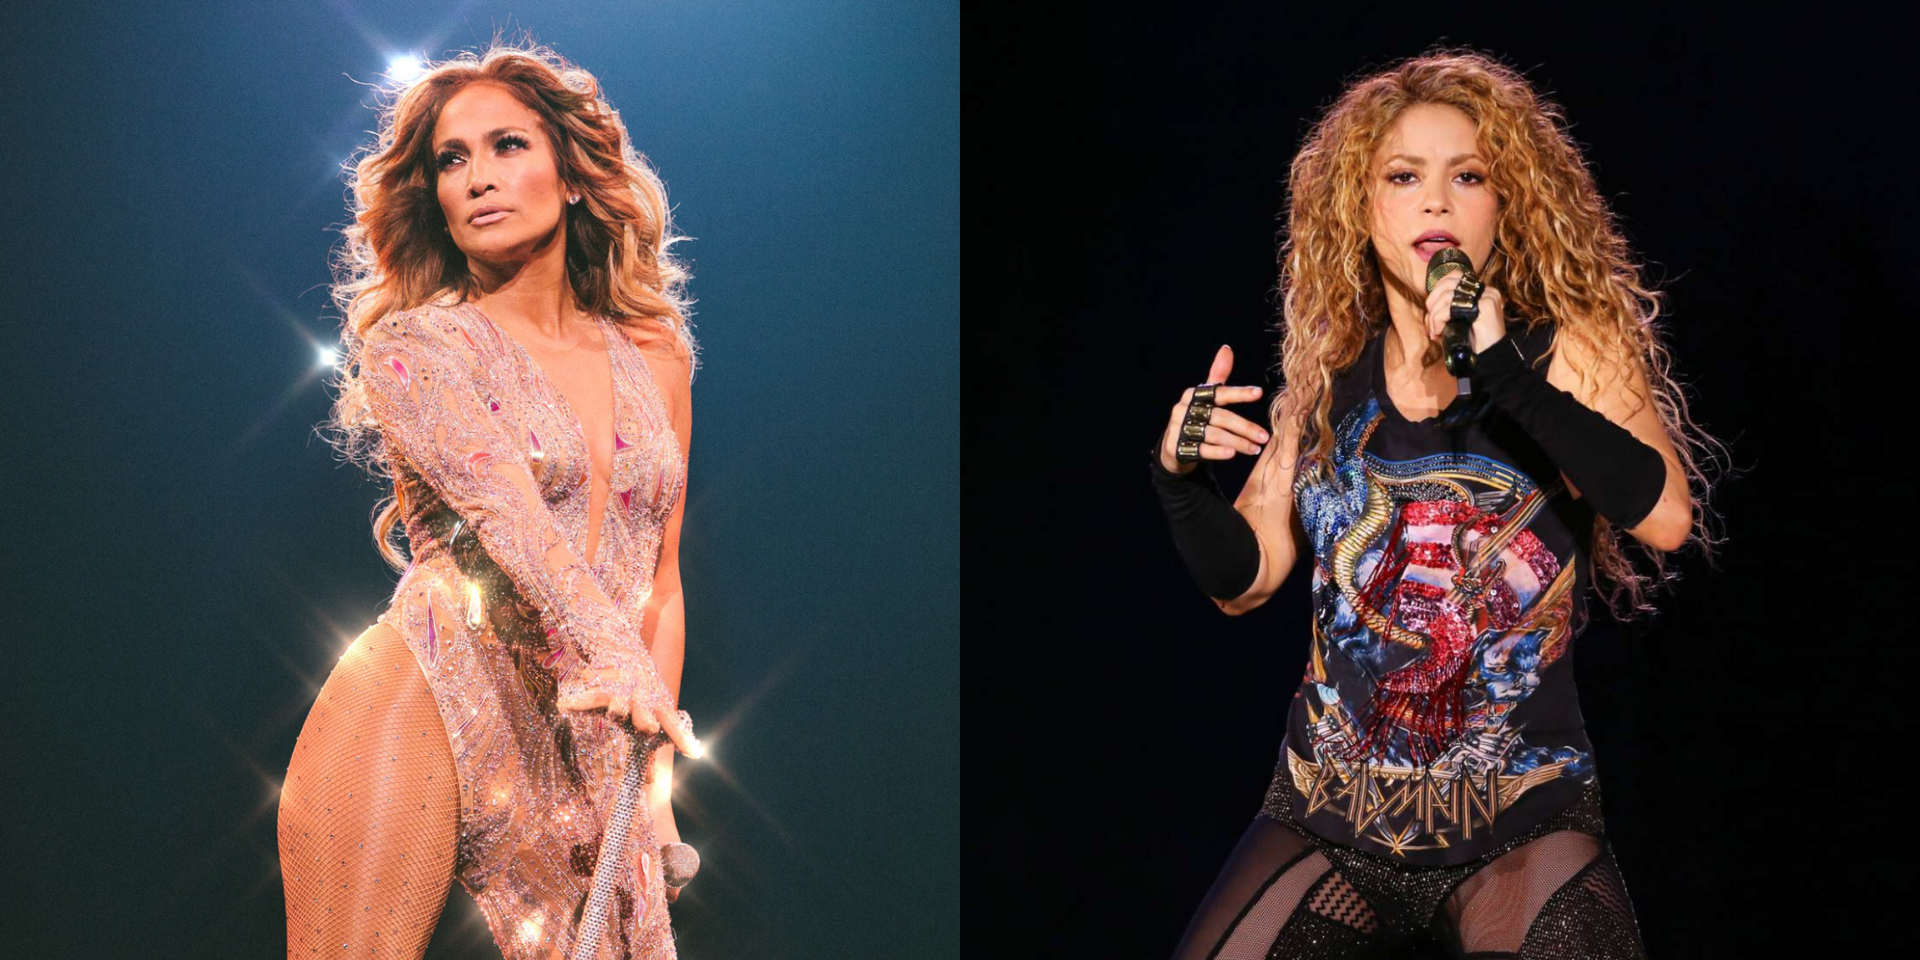 Jennifer Lopez and Shakira to co-headline the 2020 Super Bowl Halftime show